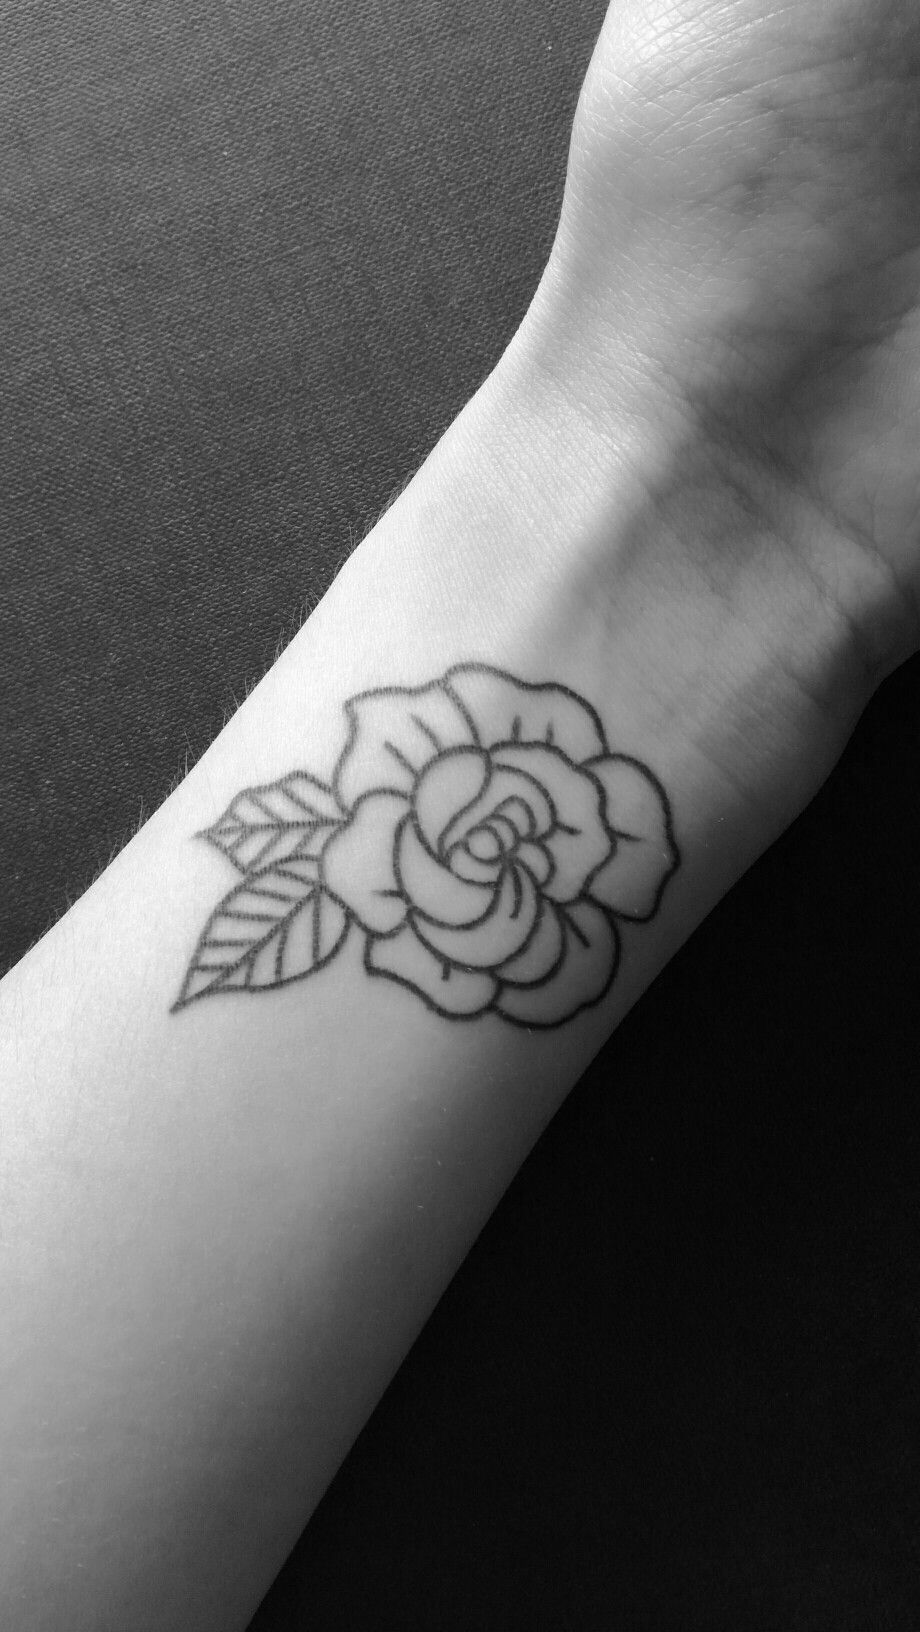 01ae69666 Gardenia tattoo wrist | I wouldn't get it on the wrist. Maybe the ankle or  shoulder blade. Somewhere hide-able.